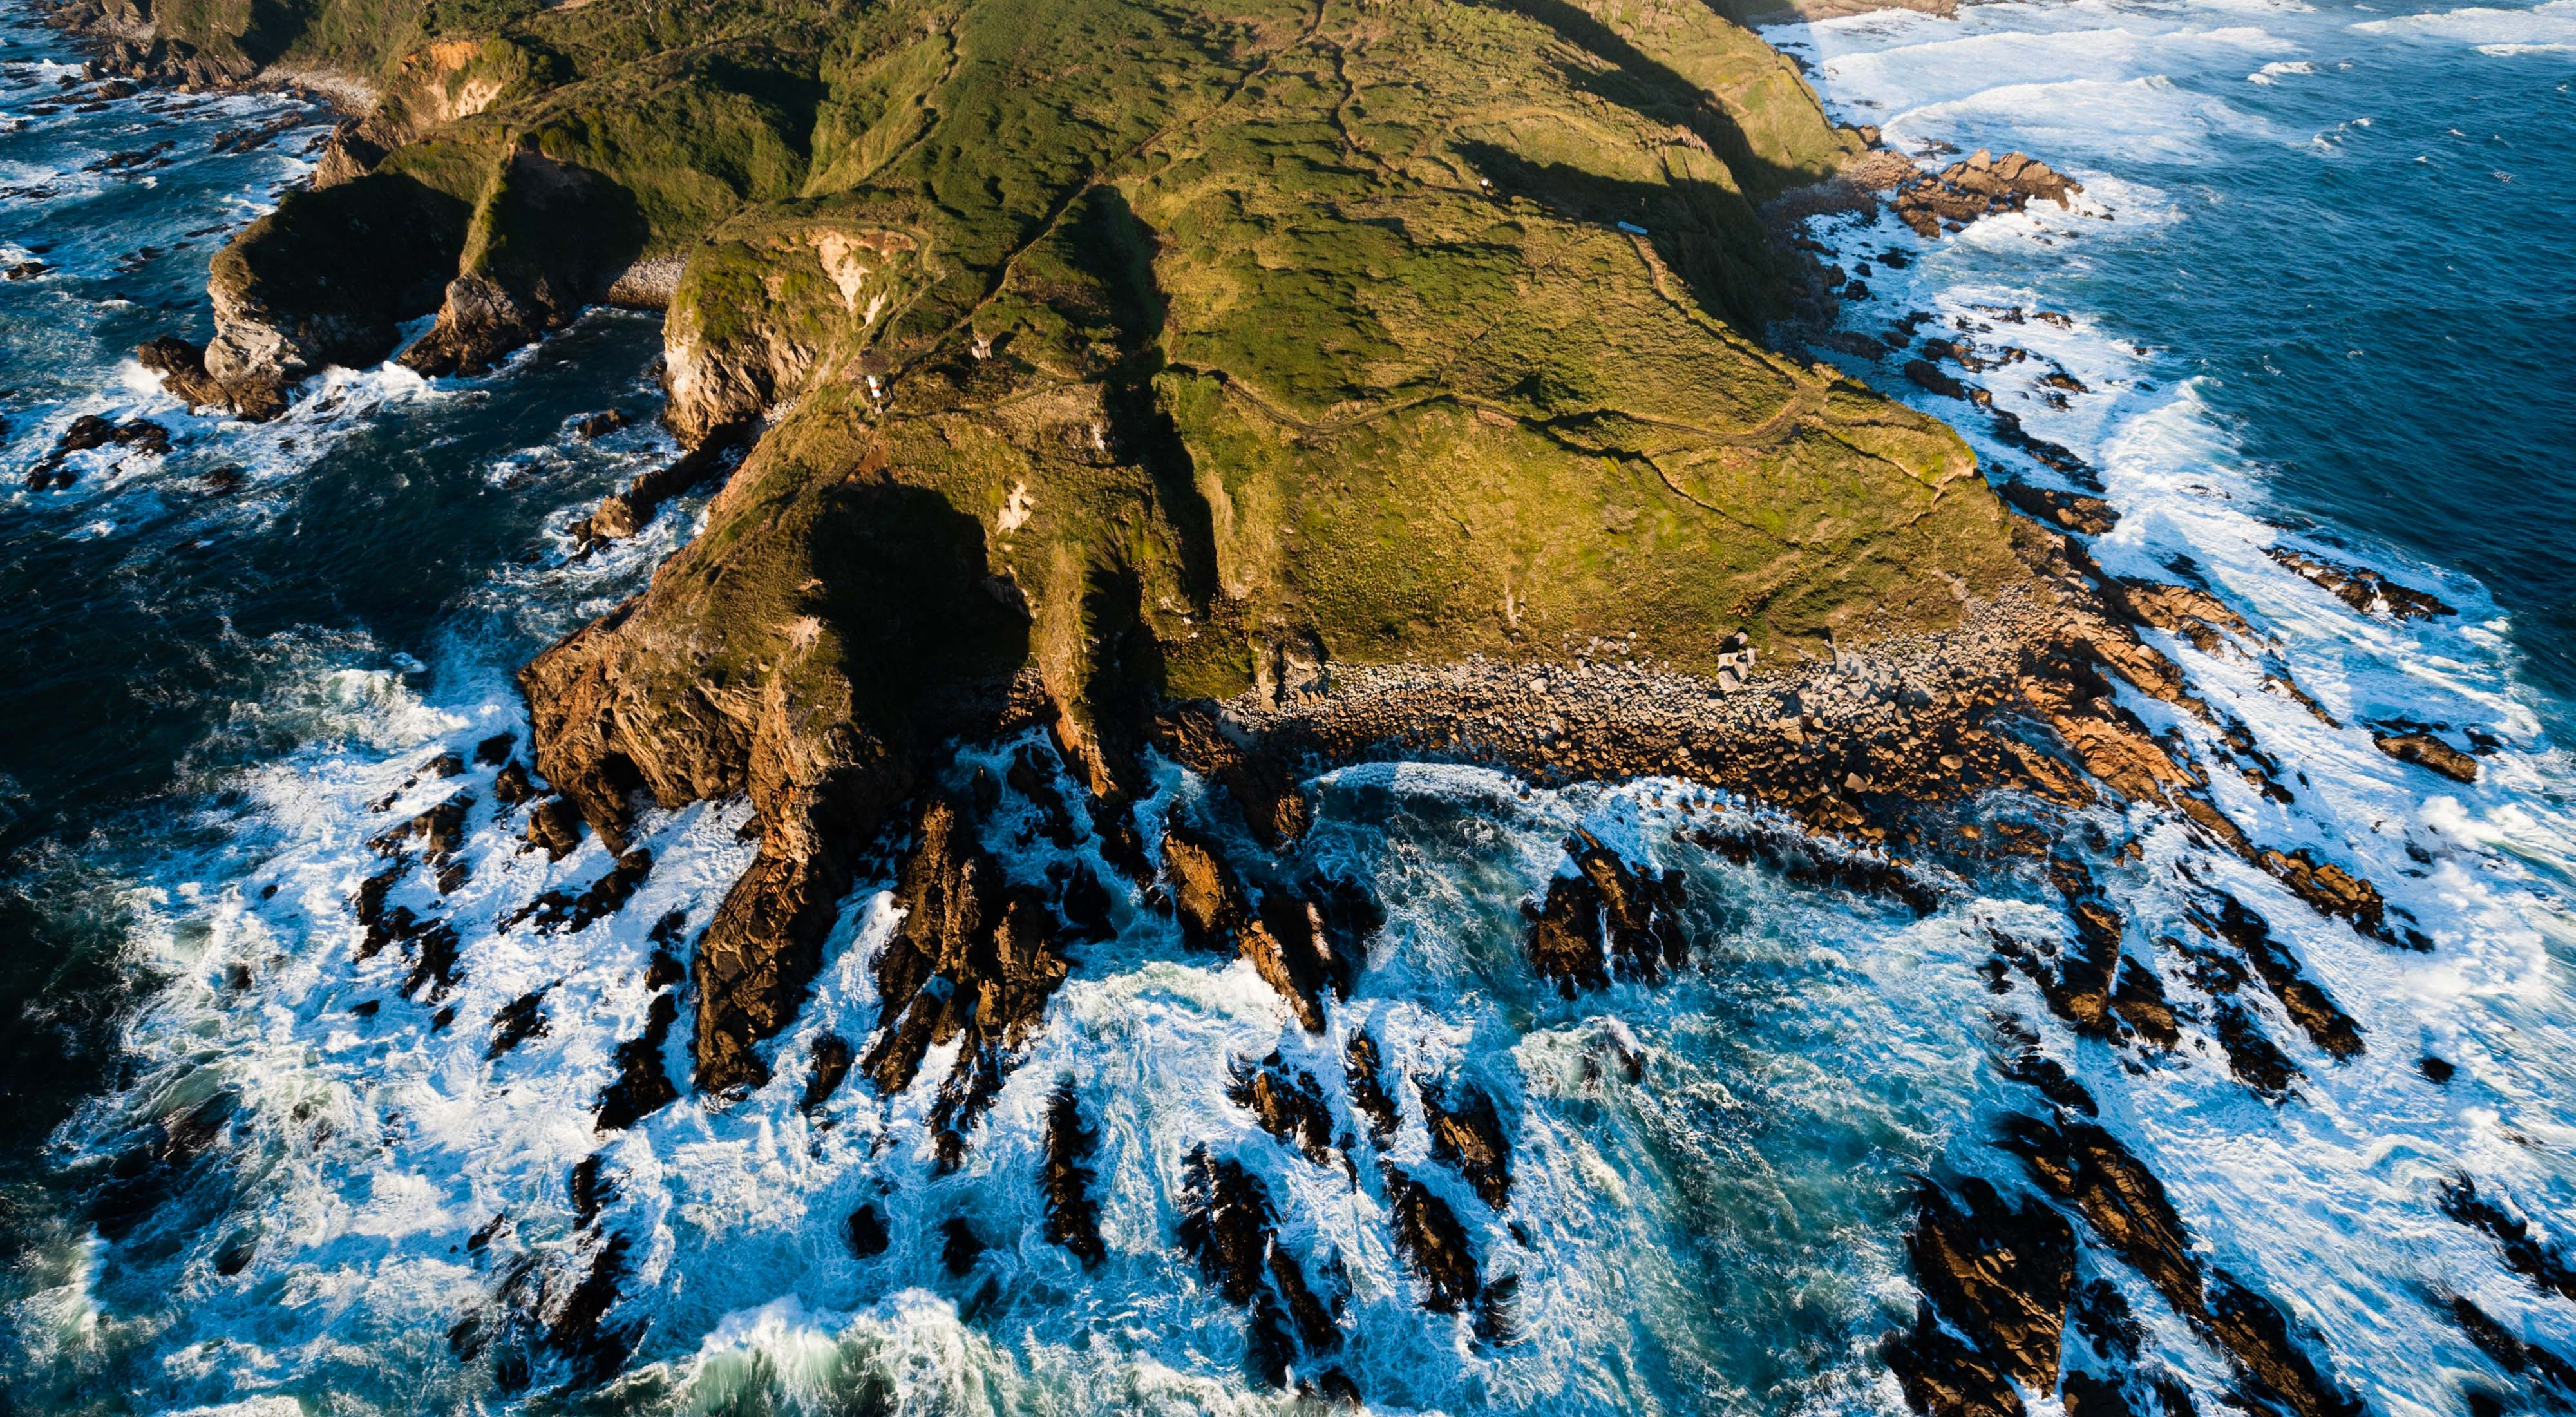 An aerial view of Colun Beach in the Valdivian Coastal Reserve, Los Rios, Chile. Photo credit: ©2012 Nick Hall